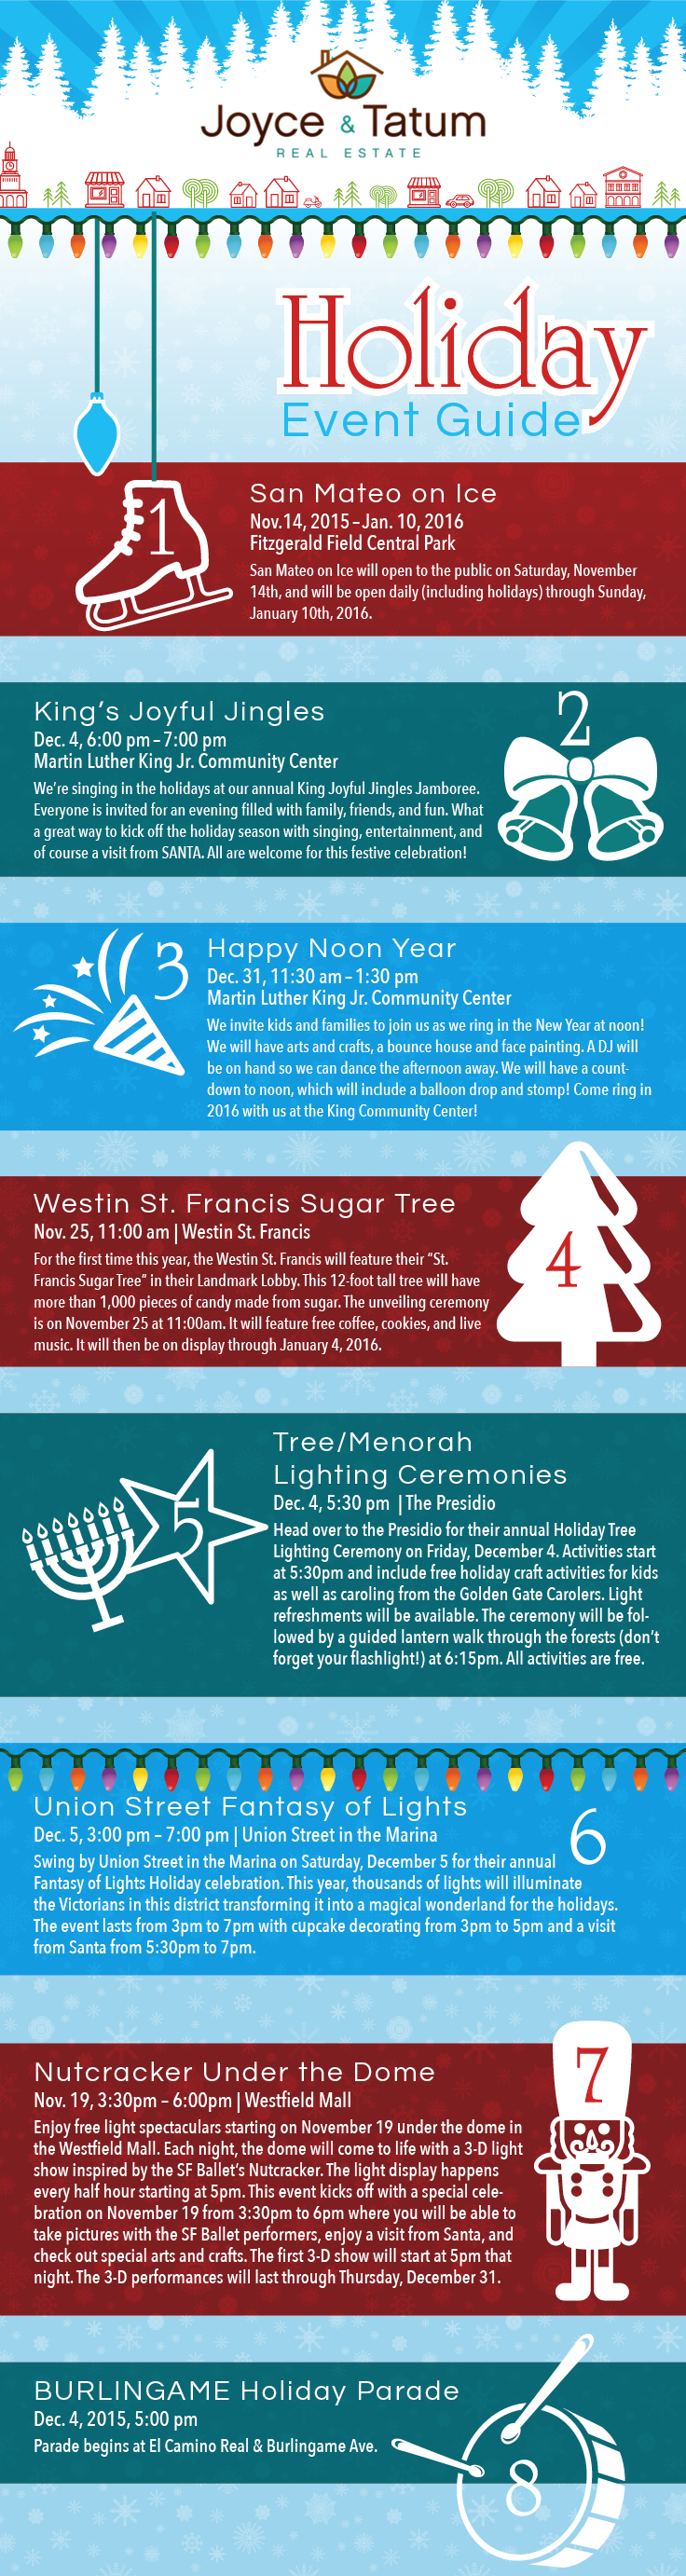 2015 Holiday Event Guide